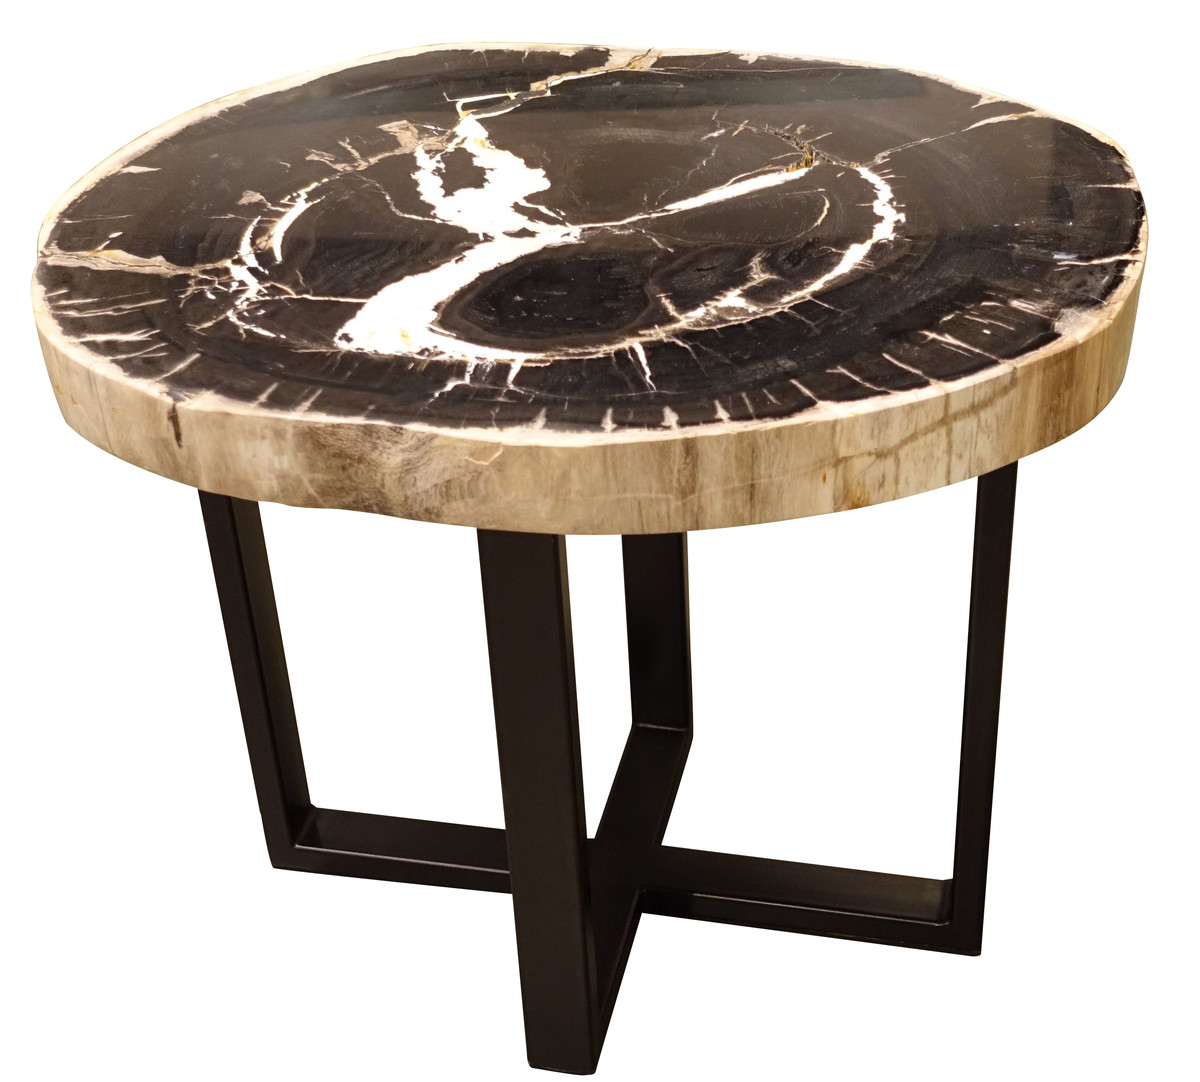 Balsamo antiques indonesian petrified wood side table